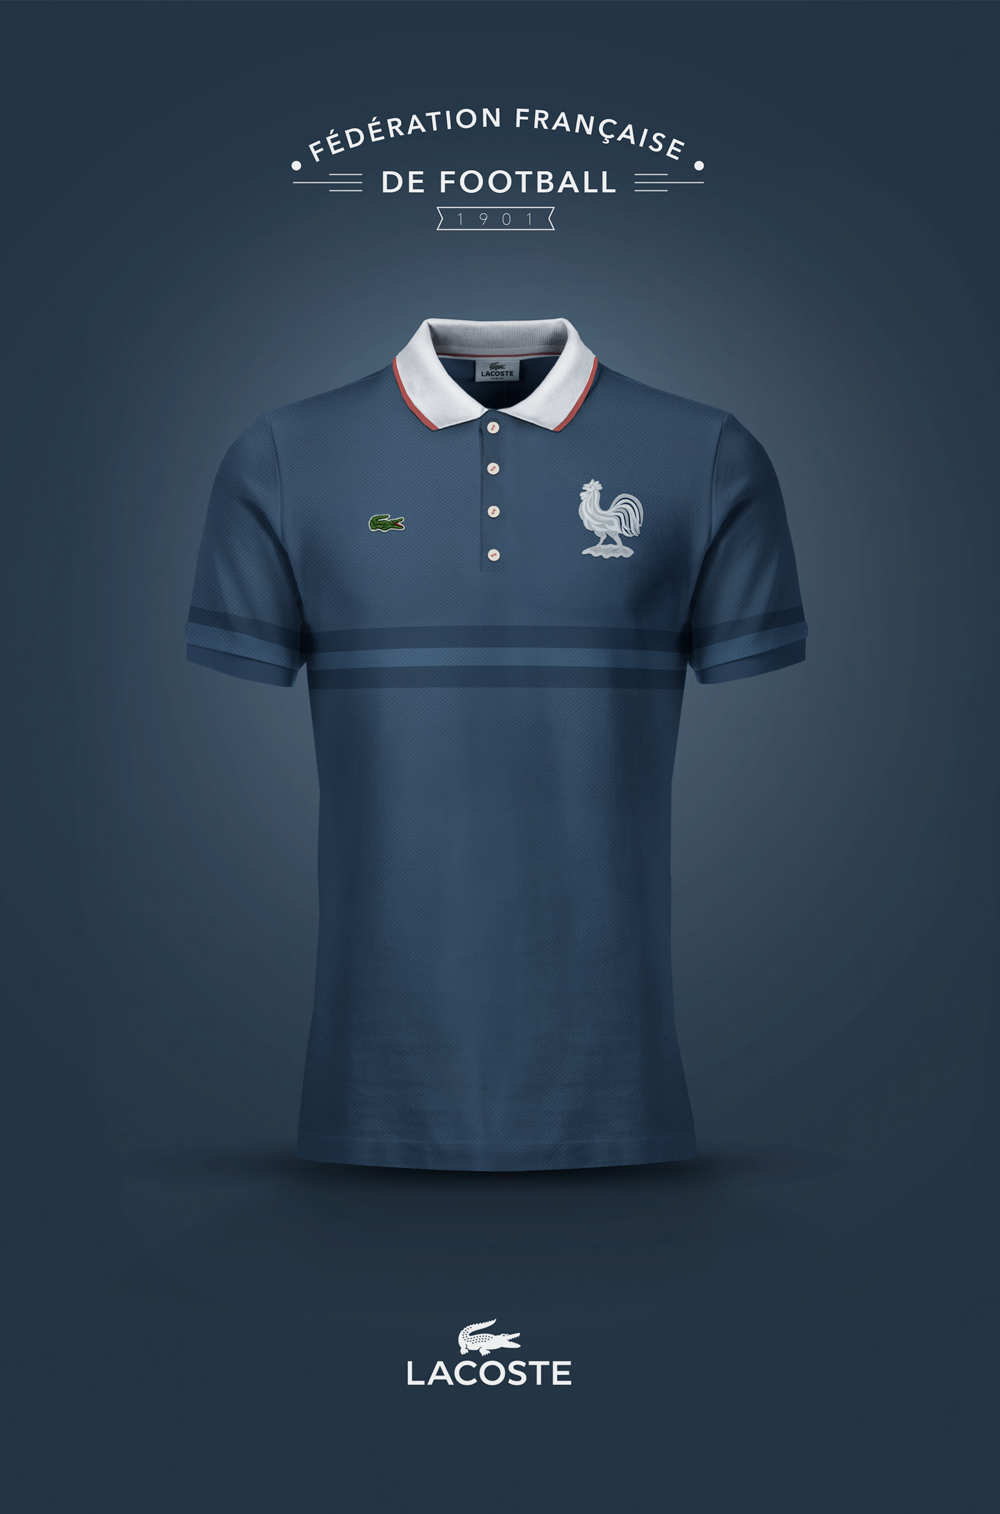 National Football kits reimagined with Local Brand sponsorship by Emilio  Sansolini - France x Lacoste 5d97abc72